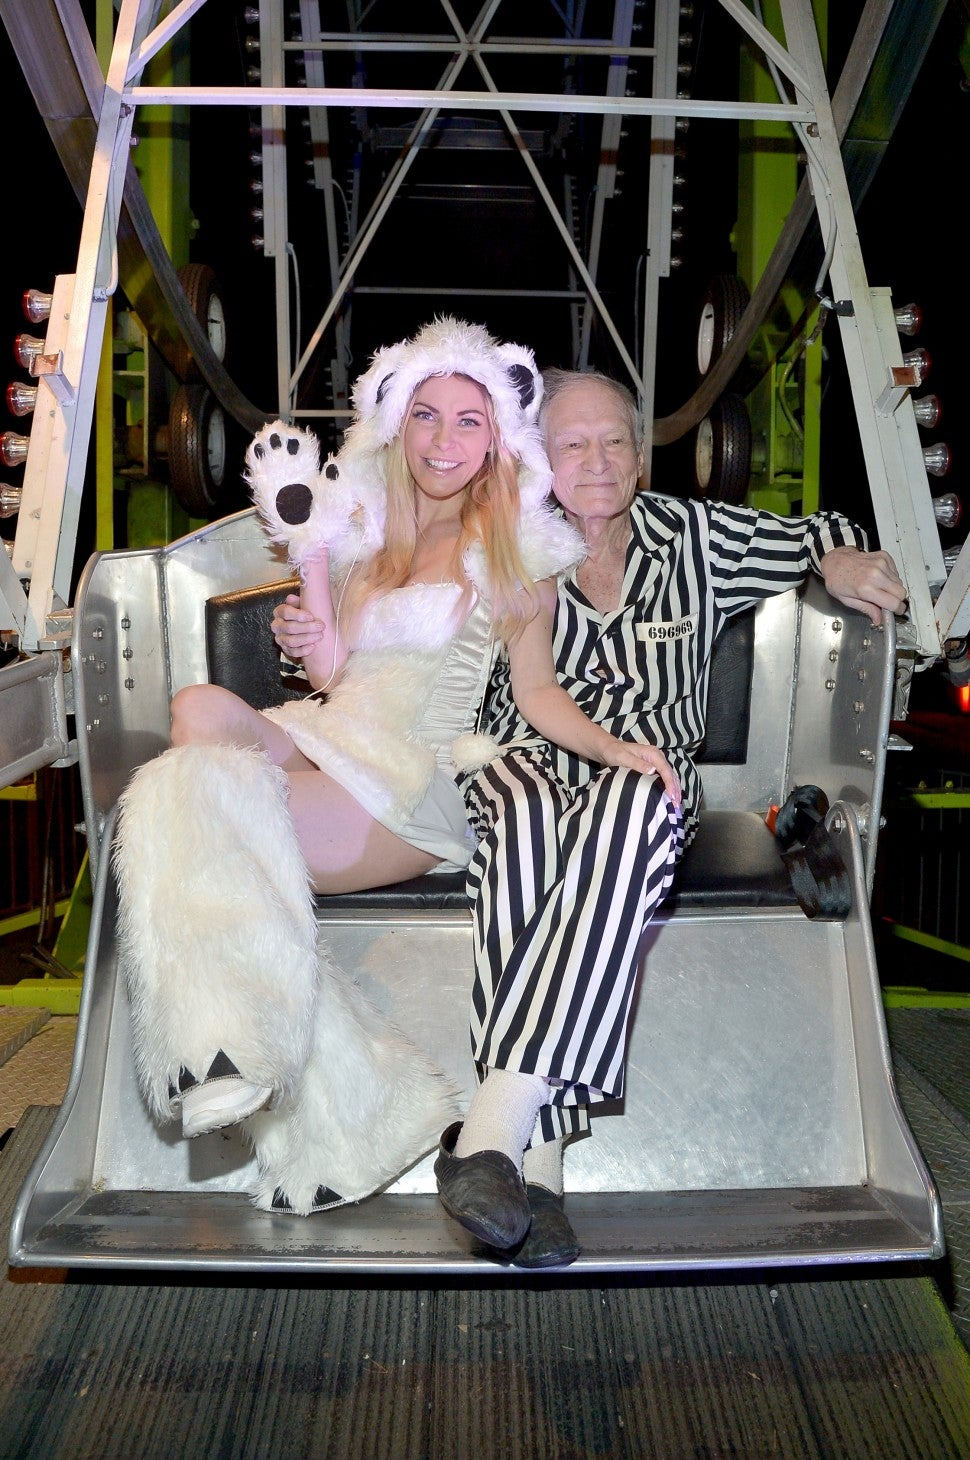 Hugh Hefner S Final Days Playboy Founder Hadn T Been Doing Well For The Last Year Entertainment Tonight